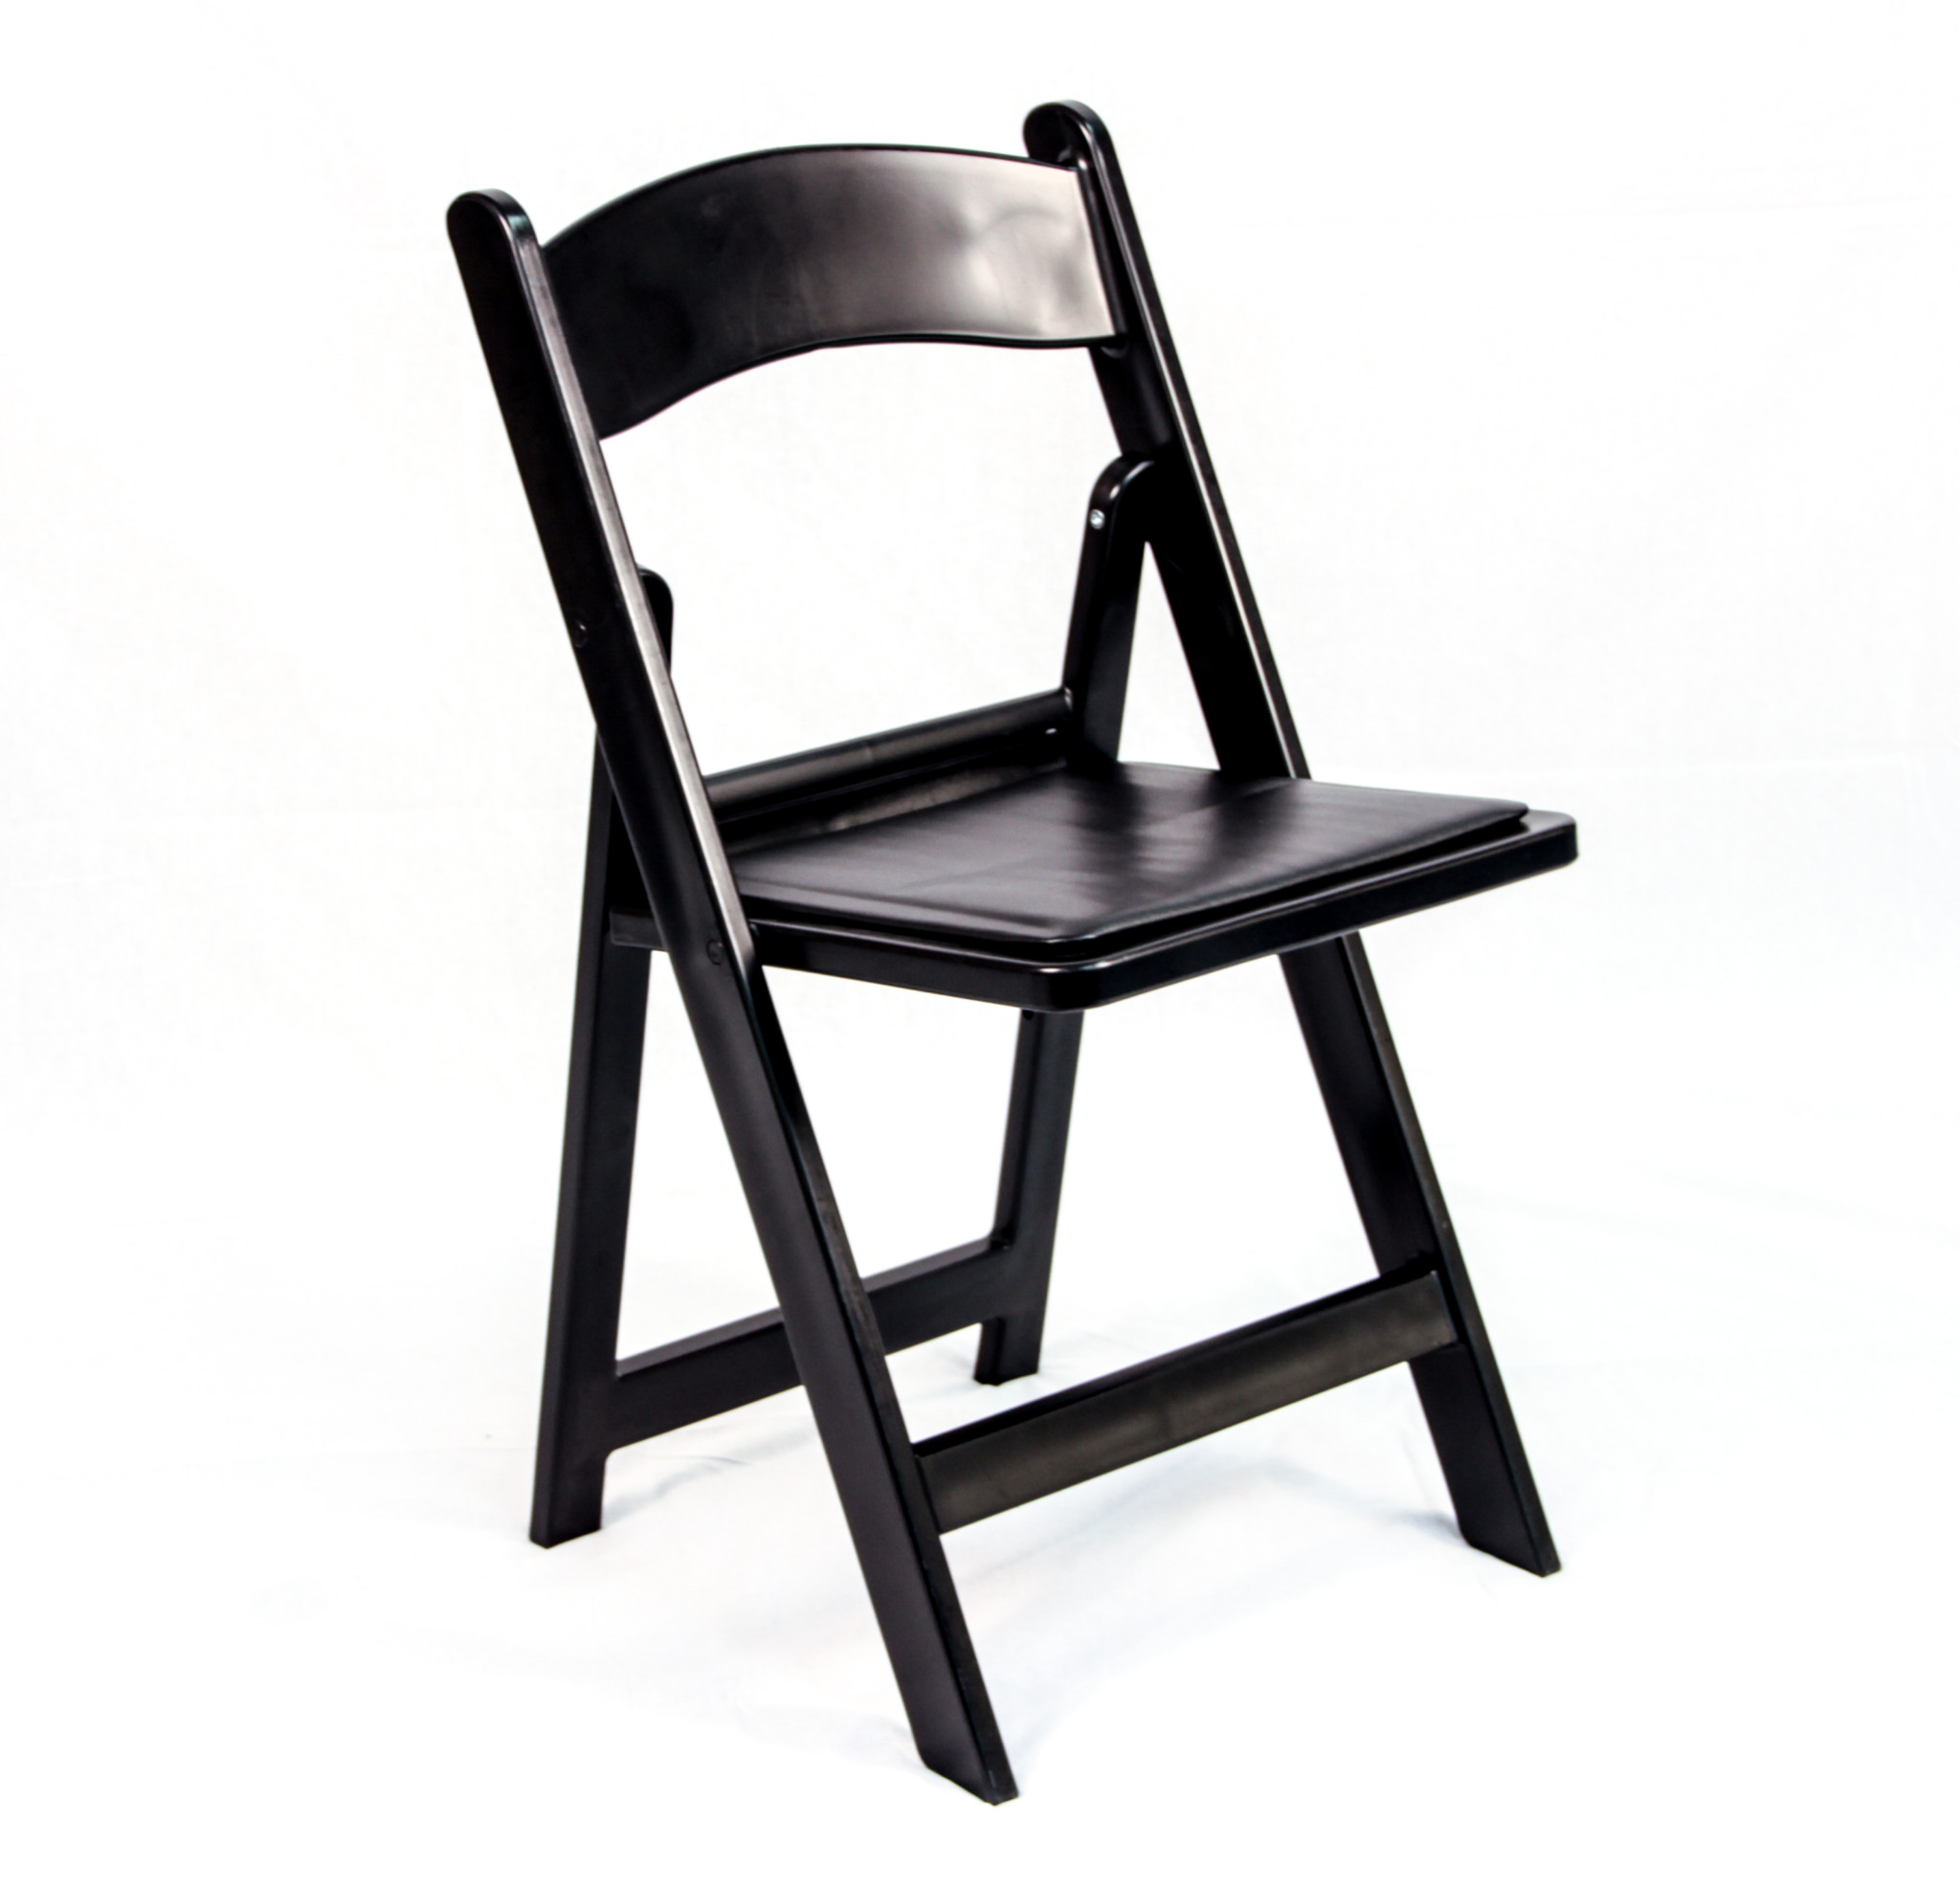 Black Folding Chairs Black Resin Folding Chair With Padded Seat Peter